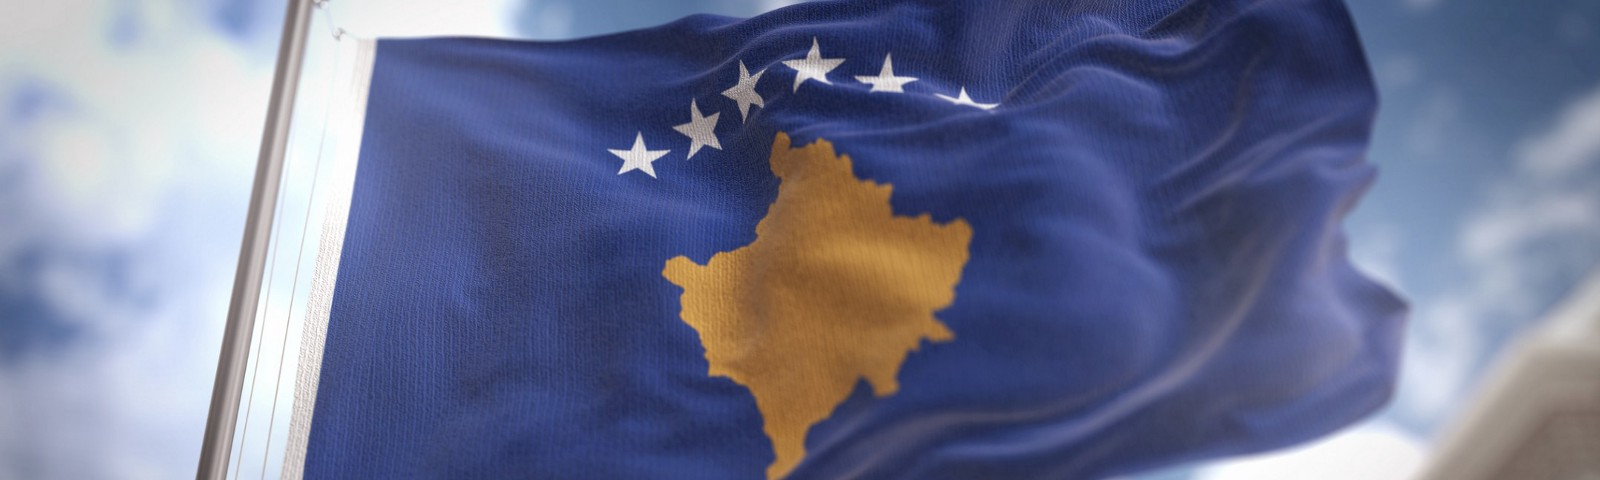 Kosovo flag blowing in the wind